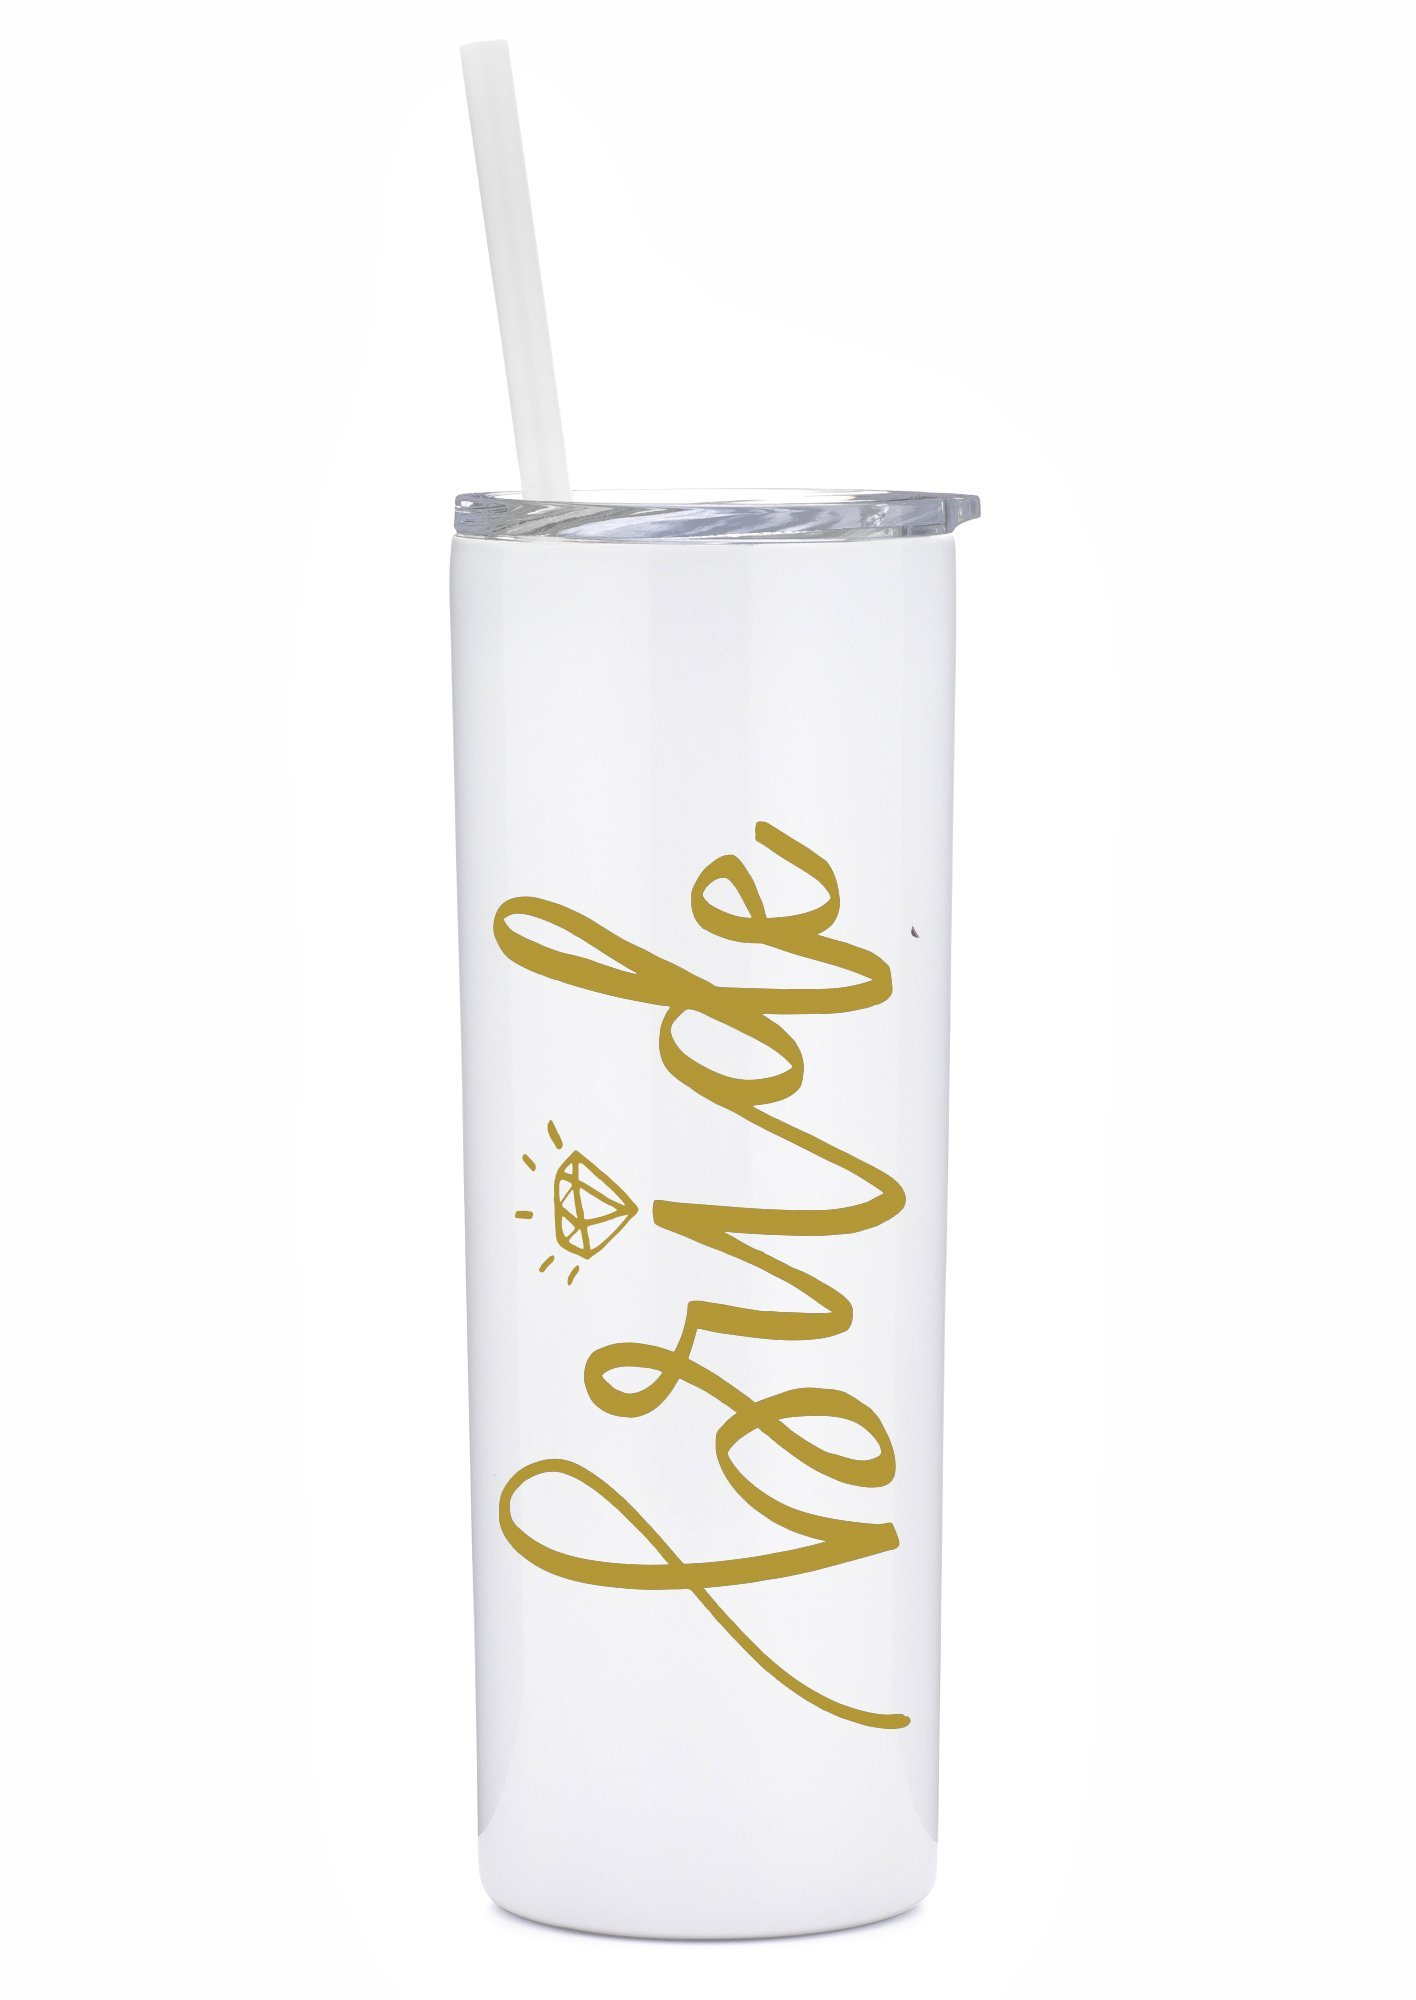 Bride Tumbler - 20 oz Stainless Steel Insulated Tumbler with Lid and Straw - Bride Gift, Bridal Shower, Engagement, Bachelorette, Wedding (White and Gold)